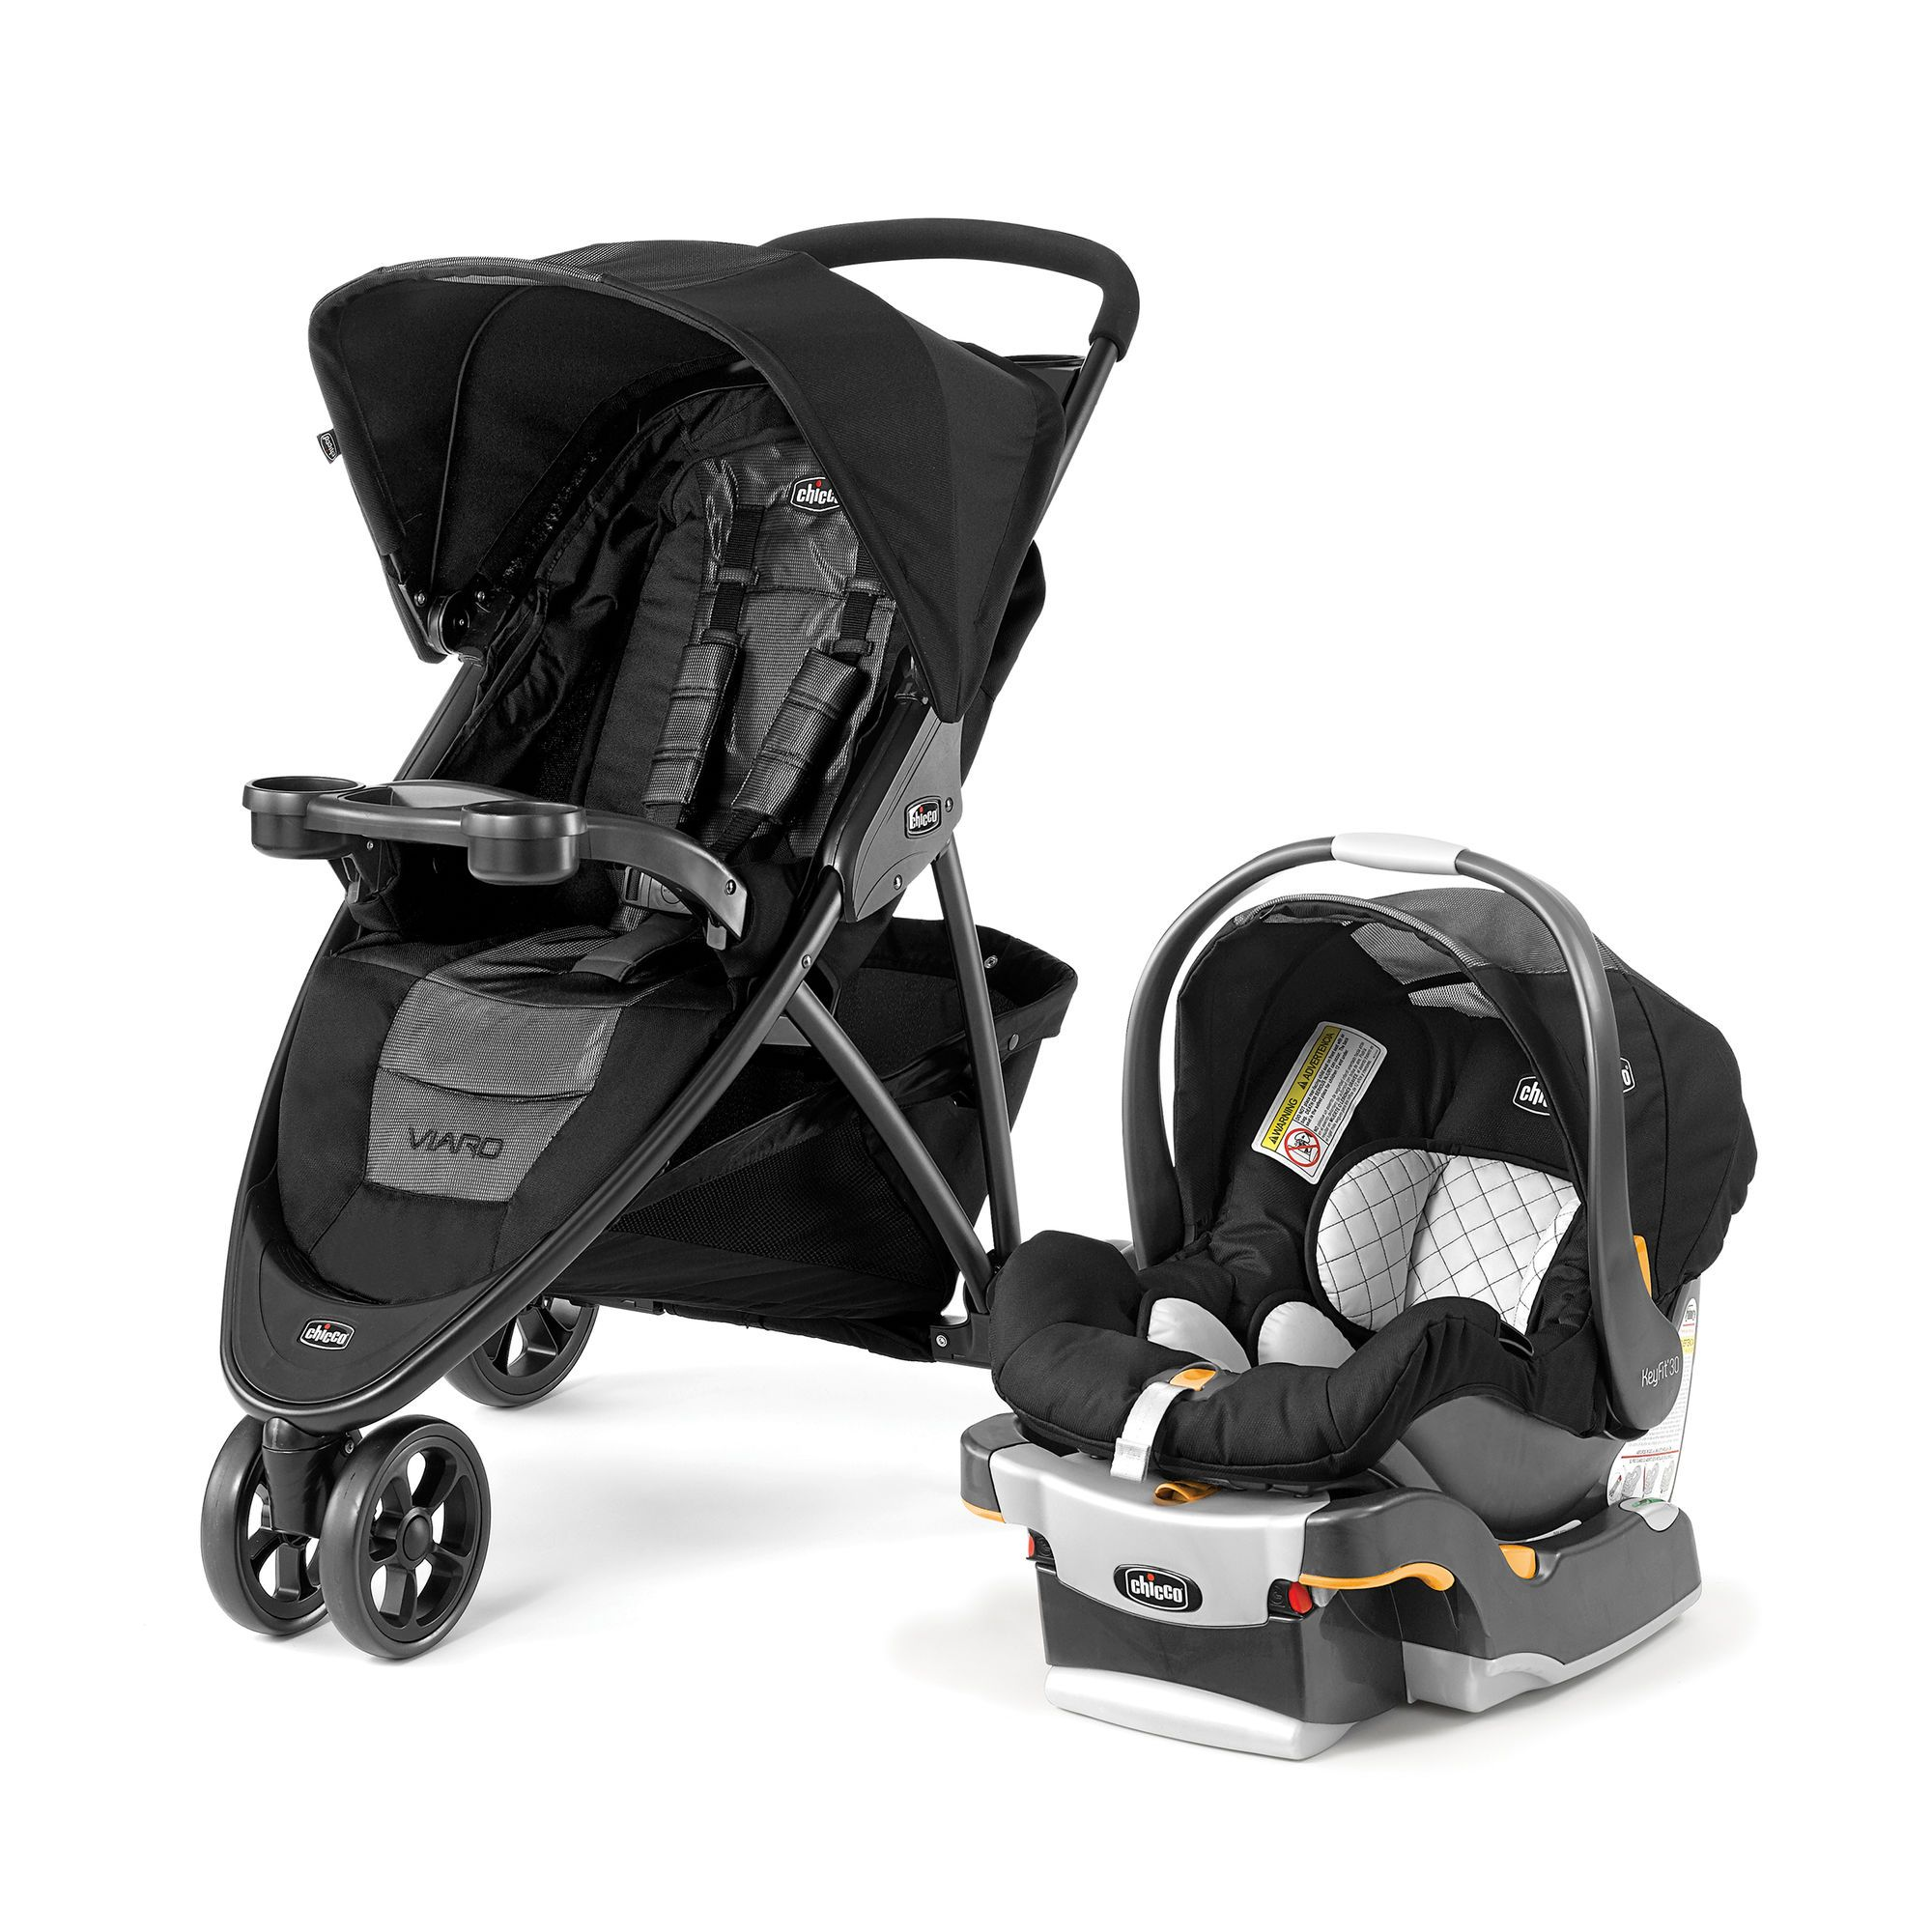 Viaro QuickFold Travel System Apex Travel system, Car